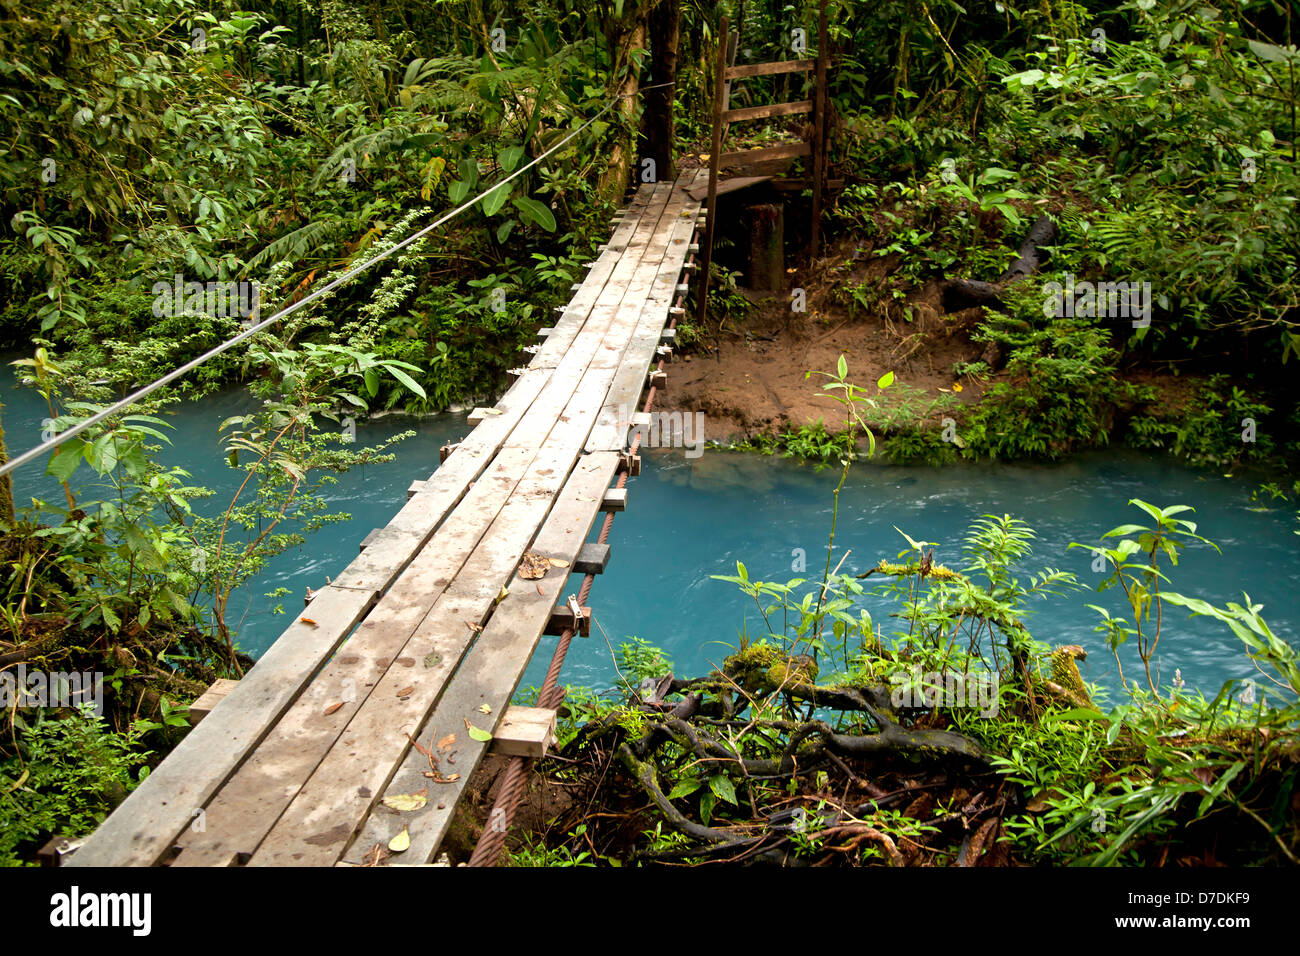 Suspension bridge over the blue waters of the Rio Celeste in Volcán Tenorio National Park, Costa Rica, - Stock Image